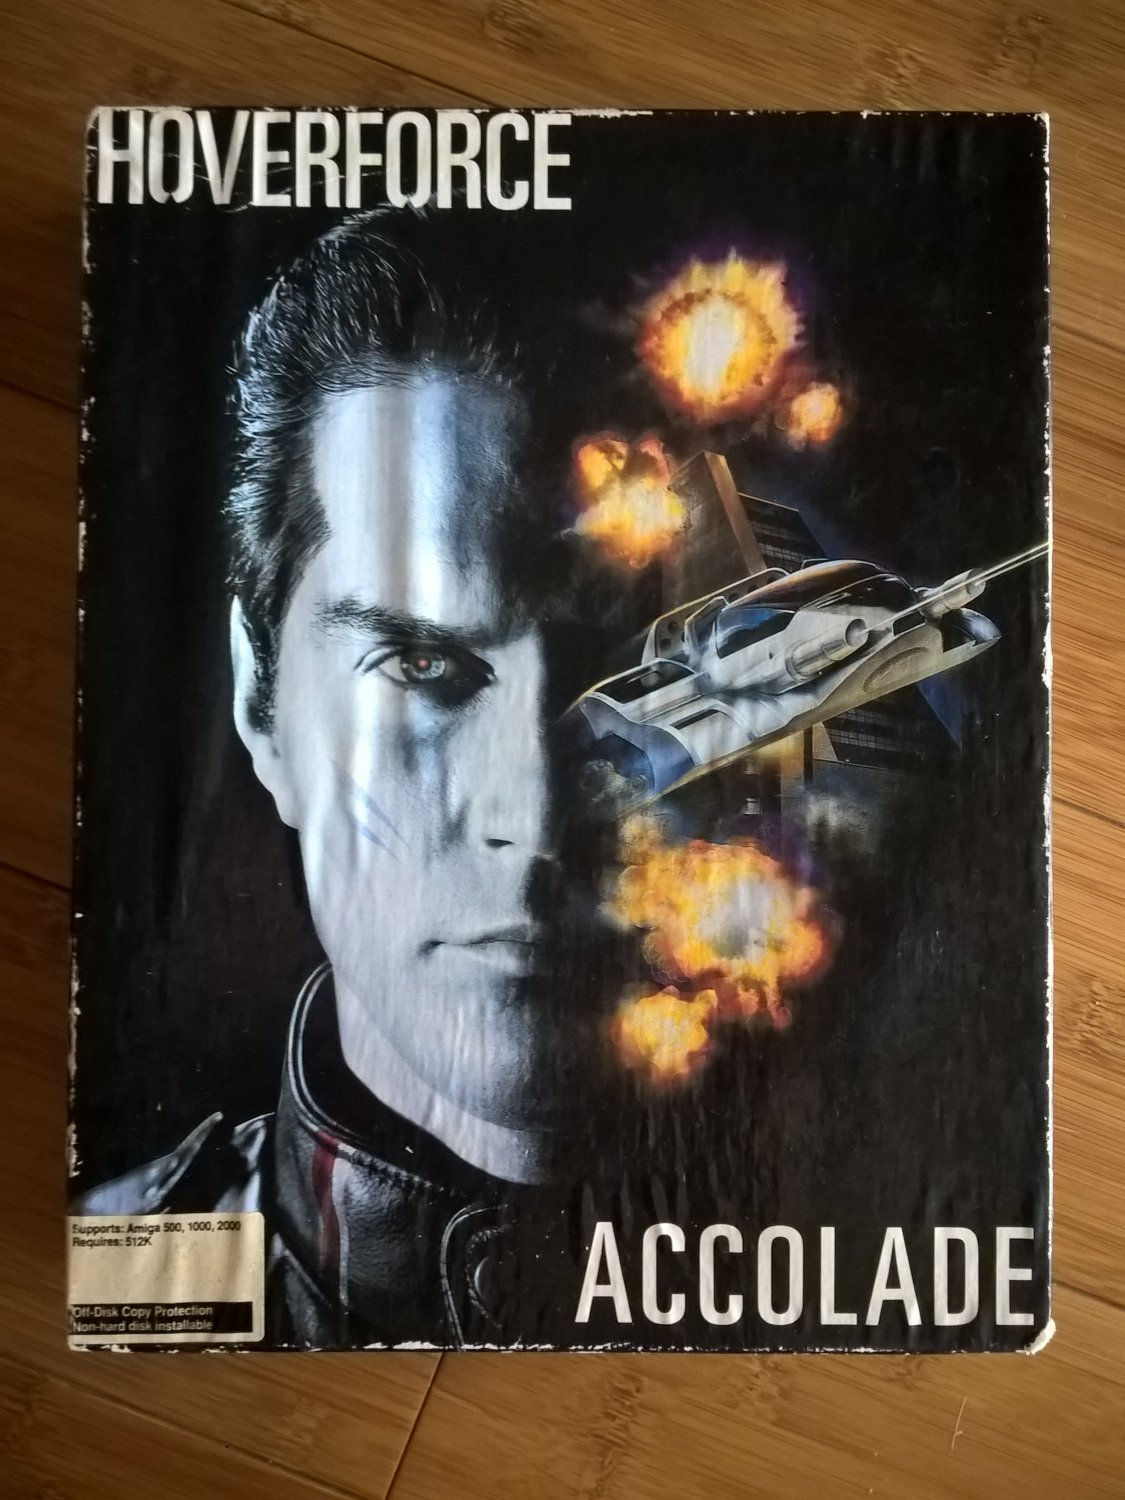 HoverForce For Commodore Amiga, NEW OPEN BOX, Accolade